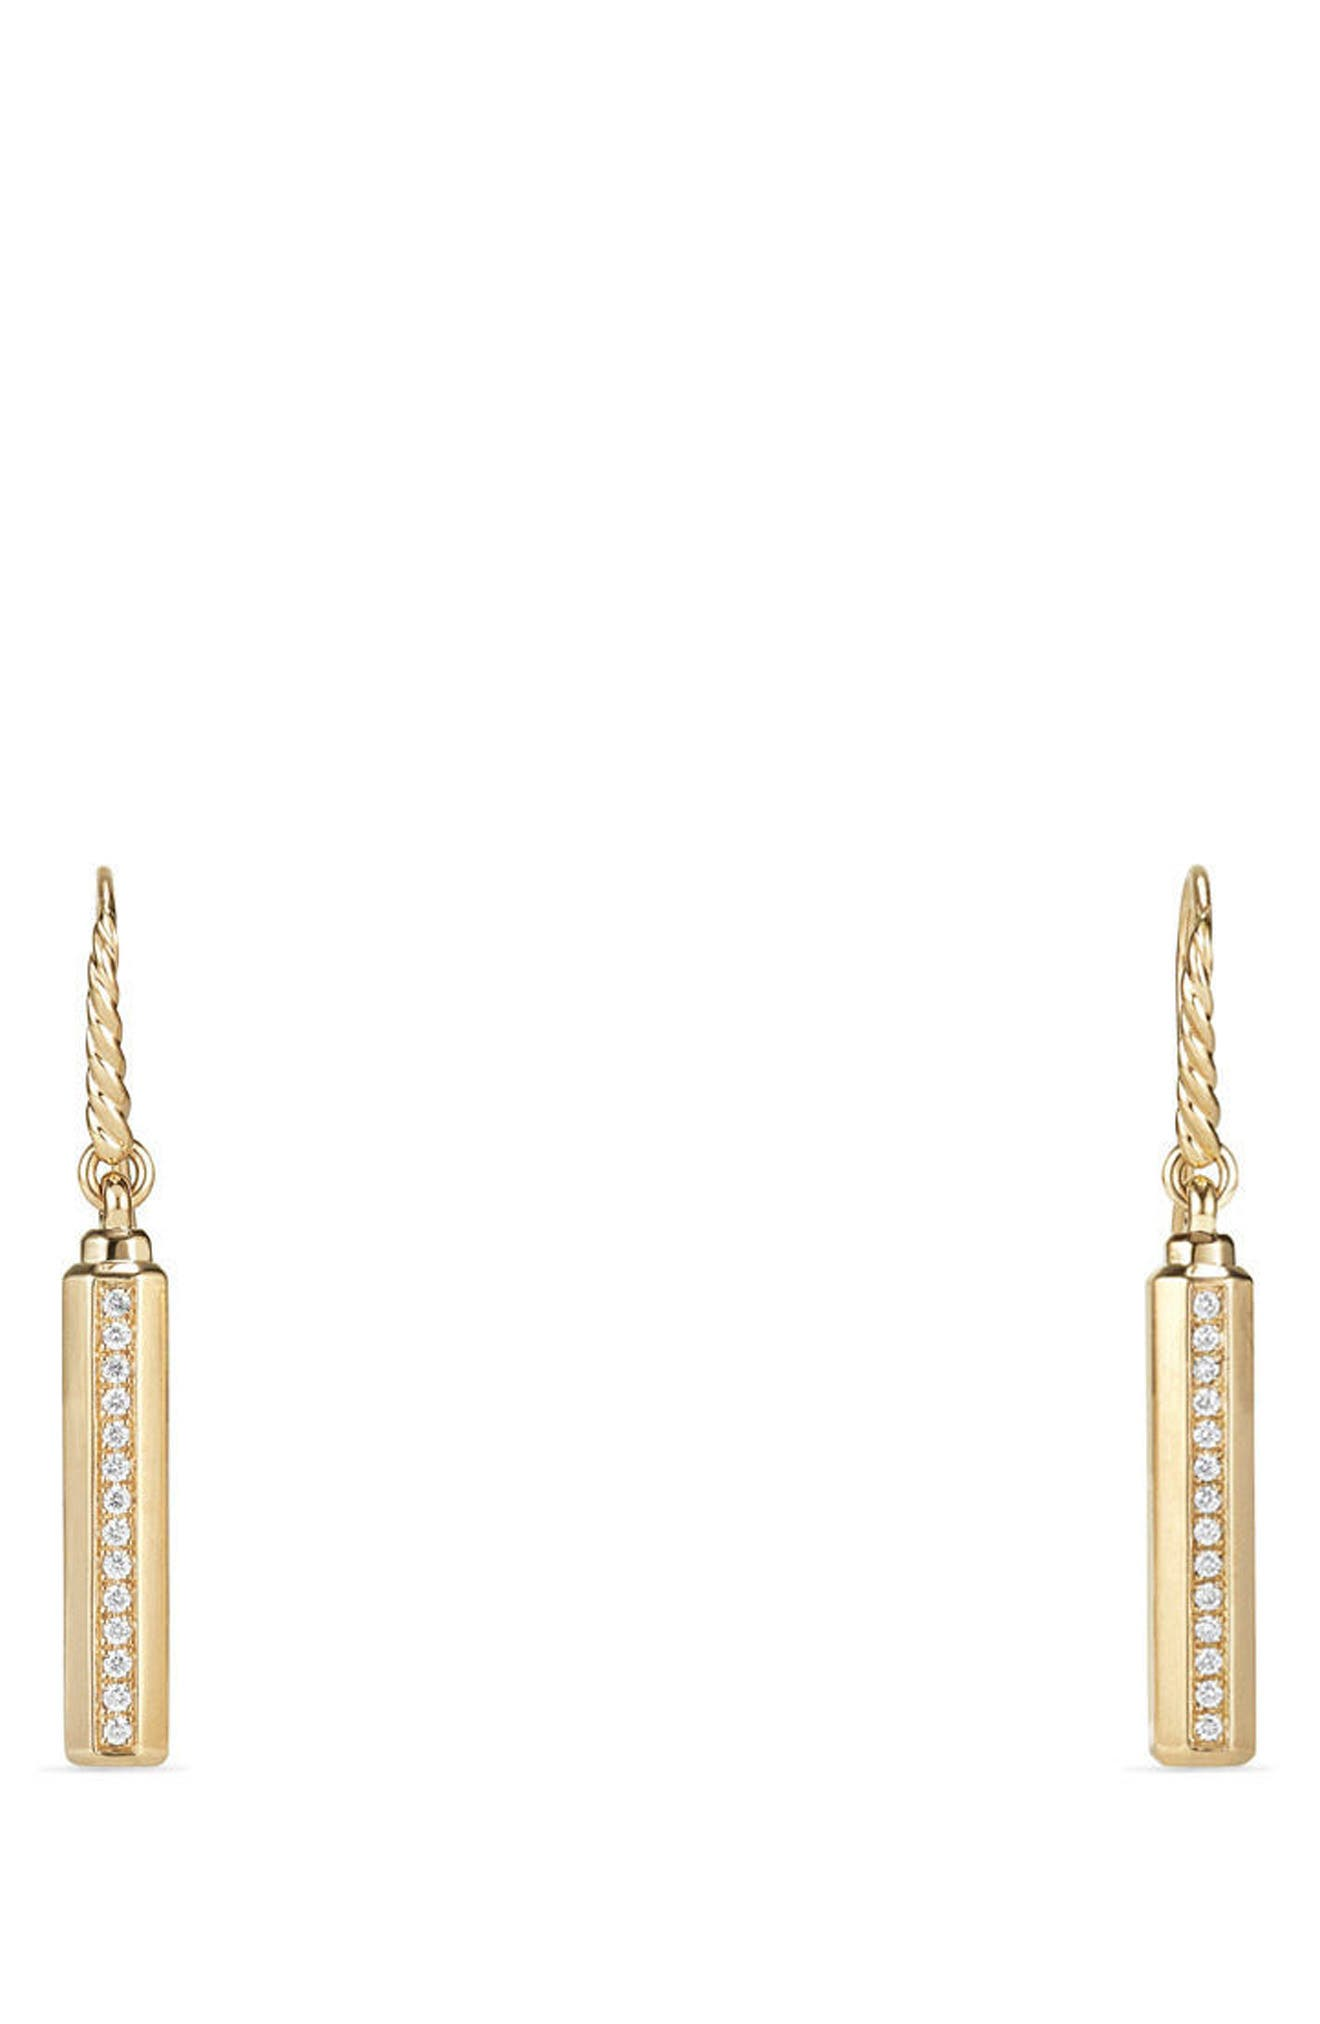 Barrels Drop Earrings with Diamonds in 18k Gold,                         Main,                         color, YELLOW GOLD